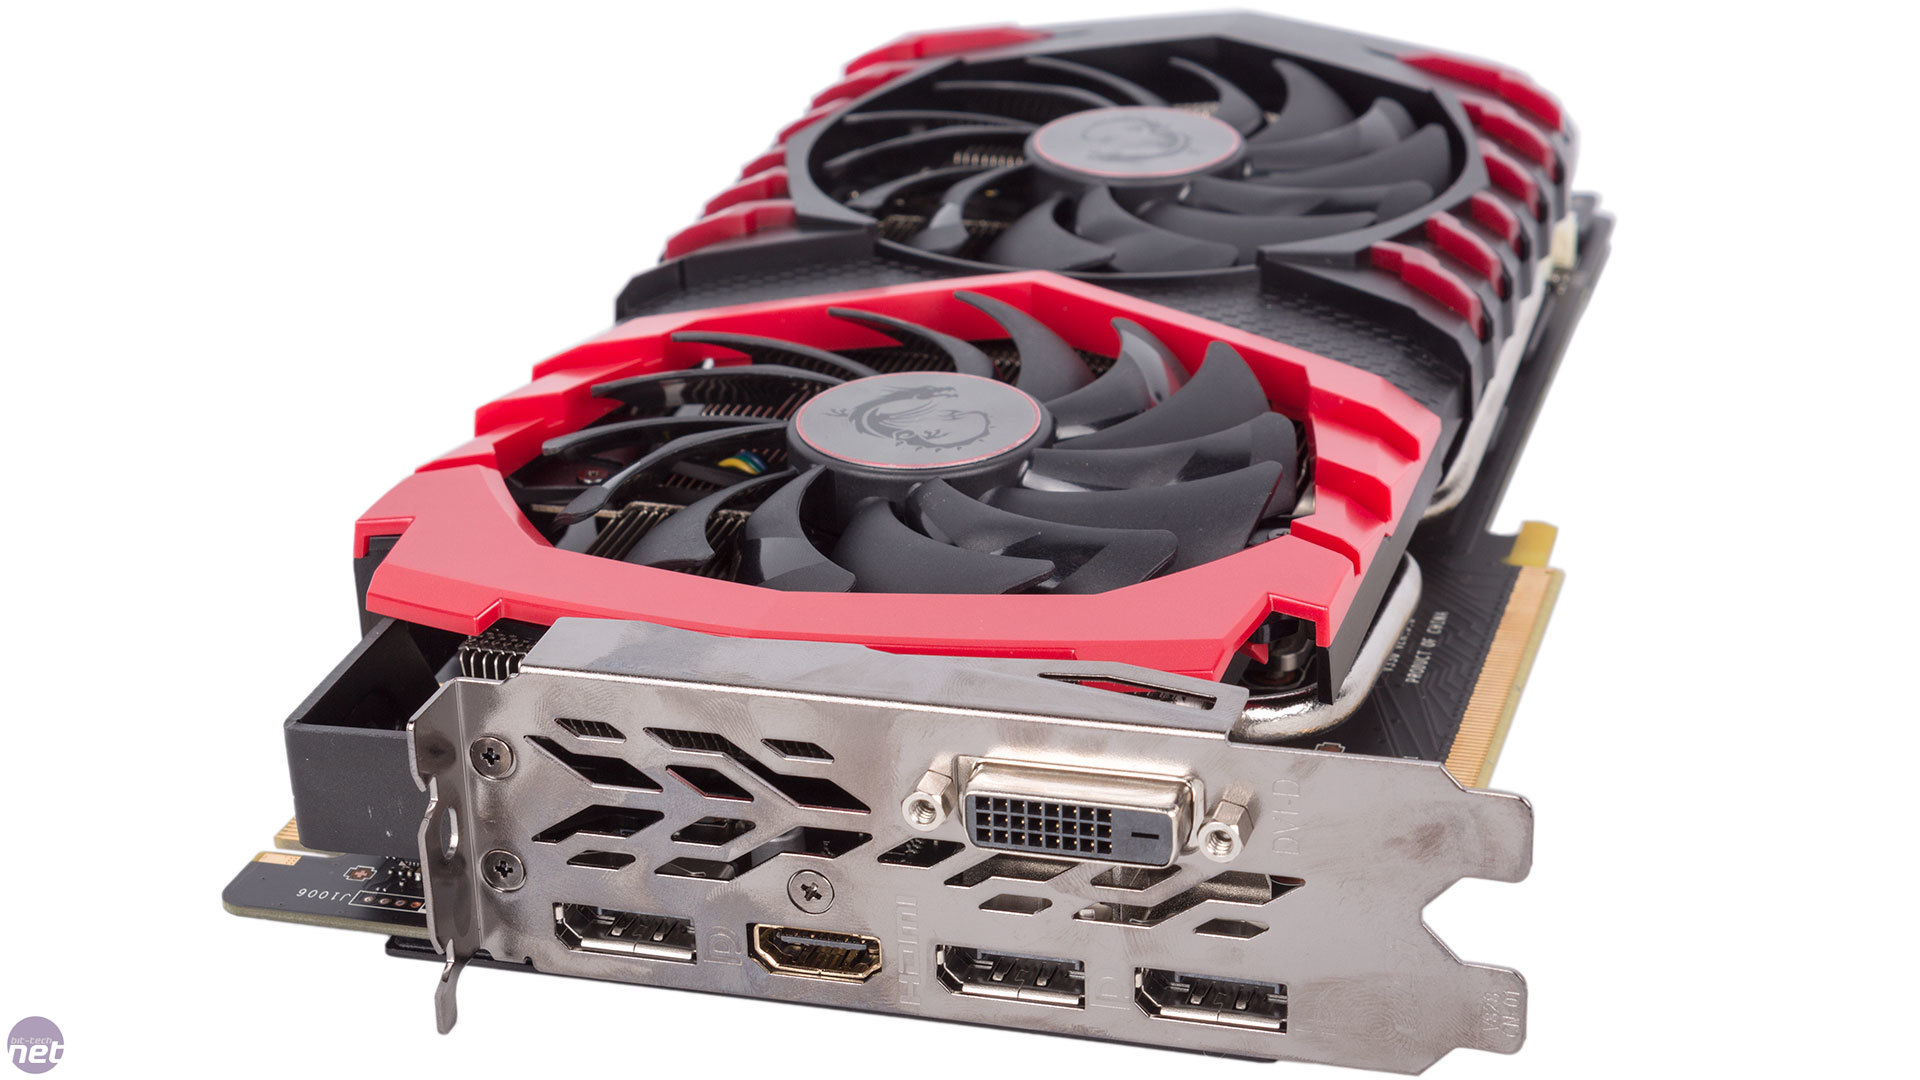 msi geforce gtx 1070 gaming x 8g вес